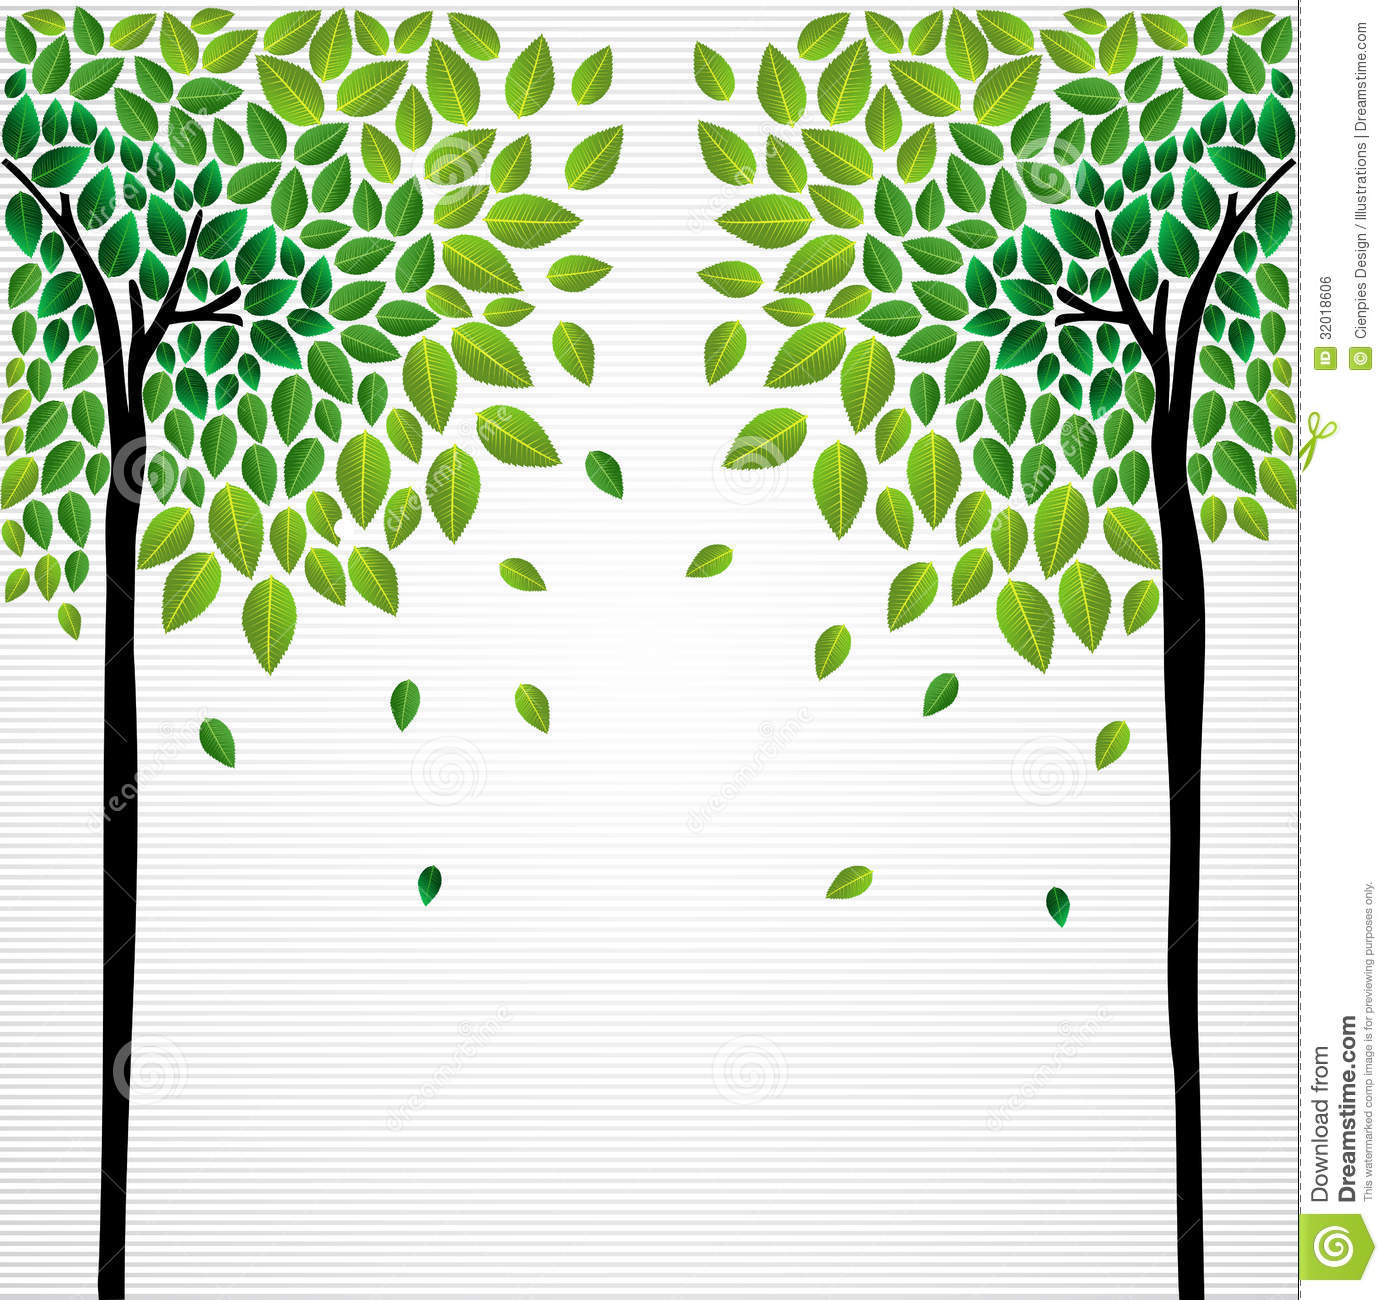 Cute concept trees drawing royalty free stock image for Green plans